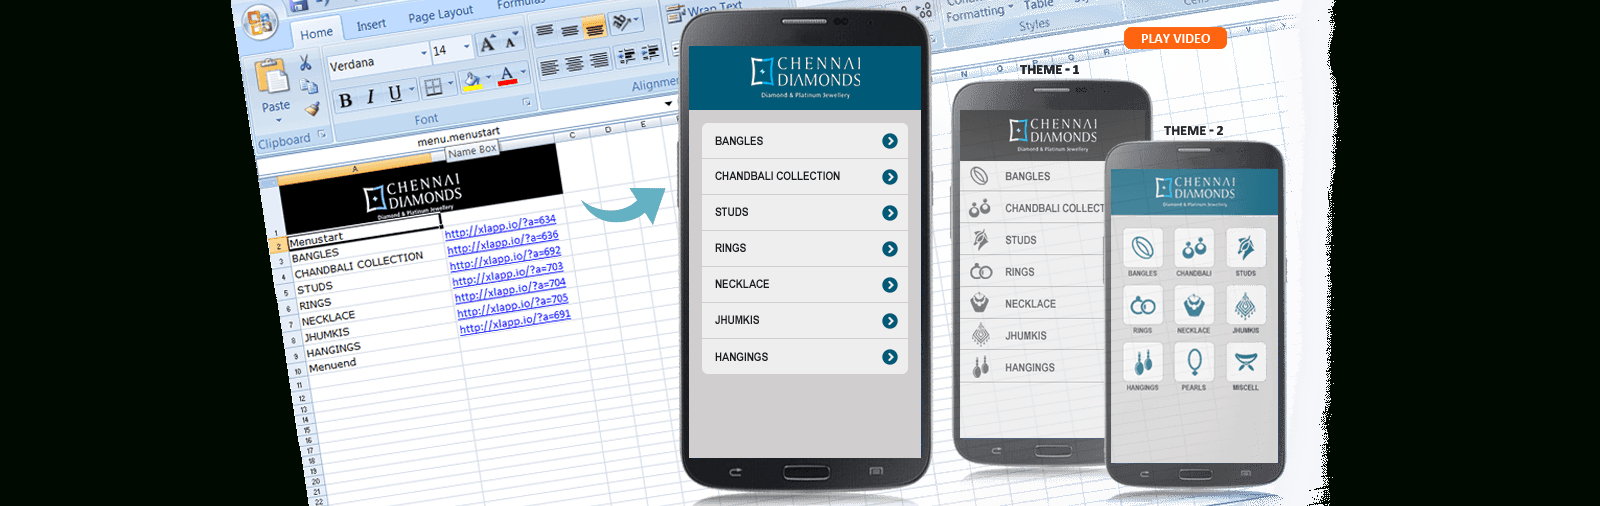 Create Iphone App From Excel Spreadsheet Intended For Convert Excel To Android App  Xlapp